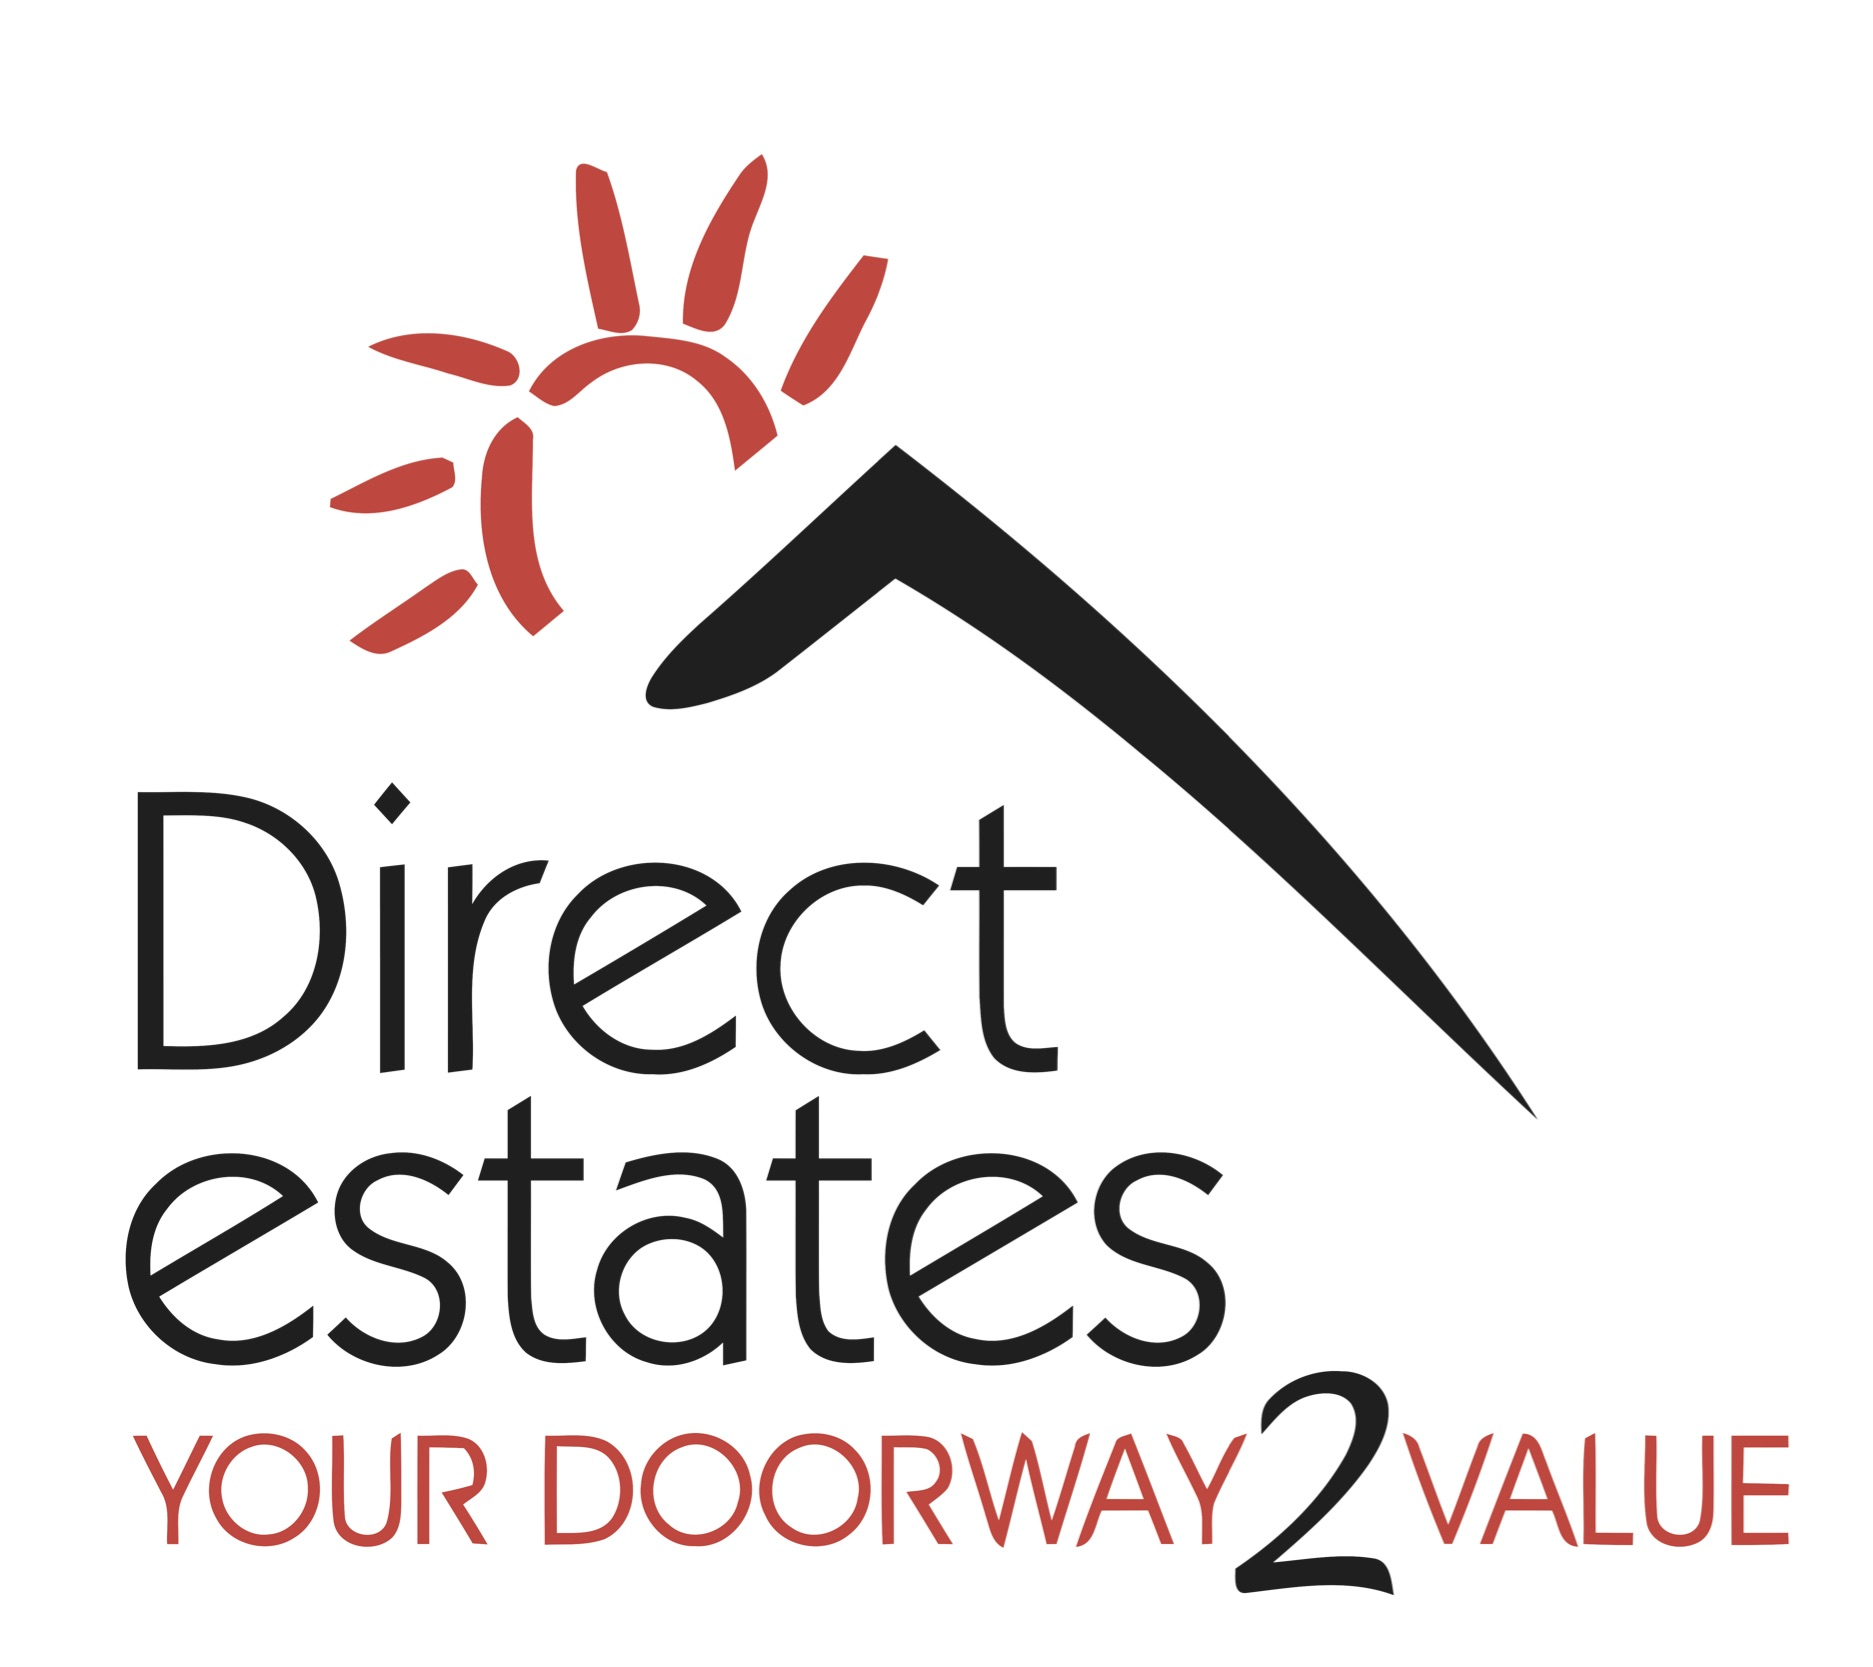 Direct Estates